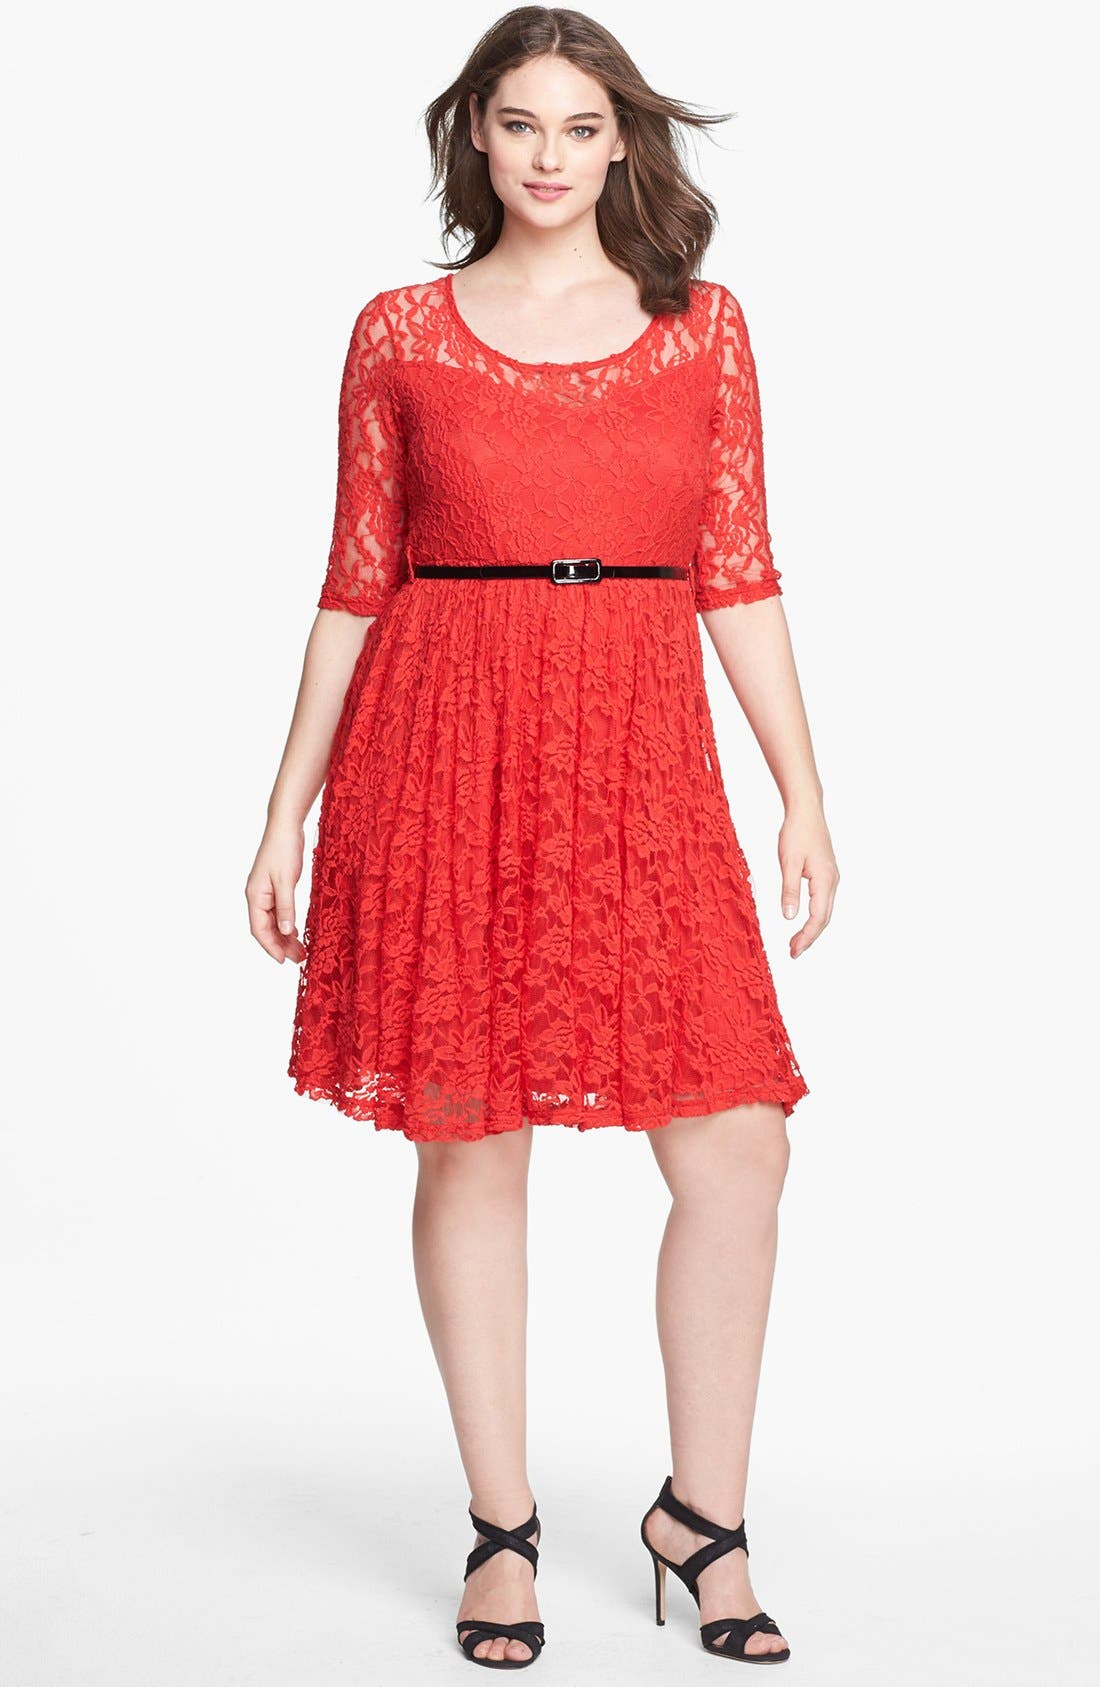 Alternate Image 1 Selected - City Chic Belted Lace Fit & Flare Dress (Plus Size)